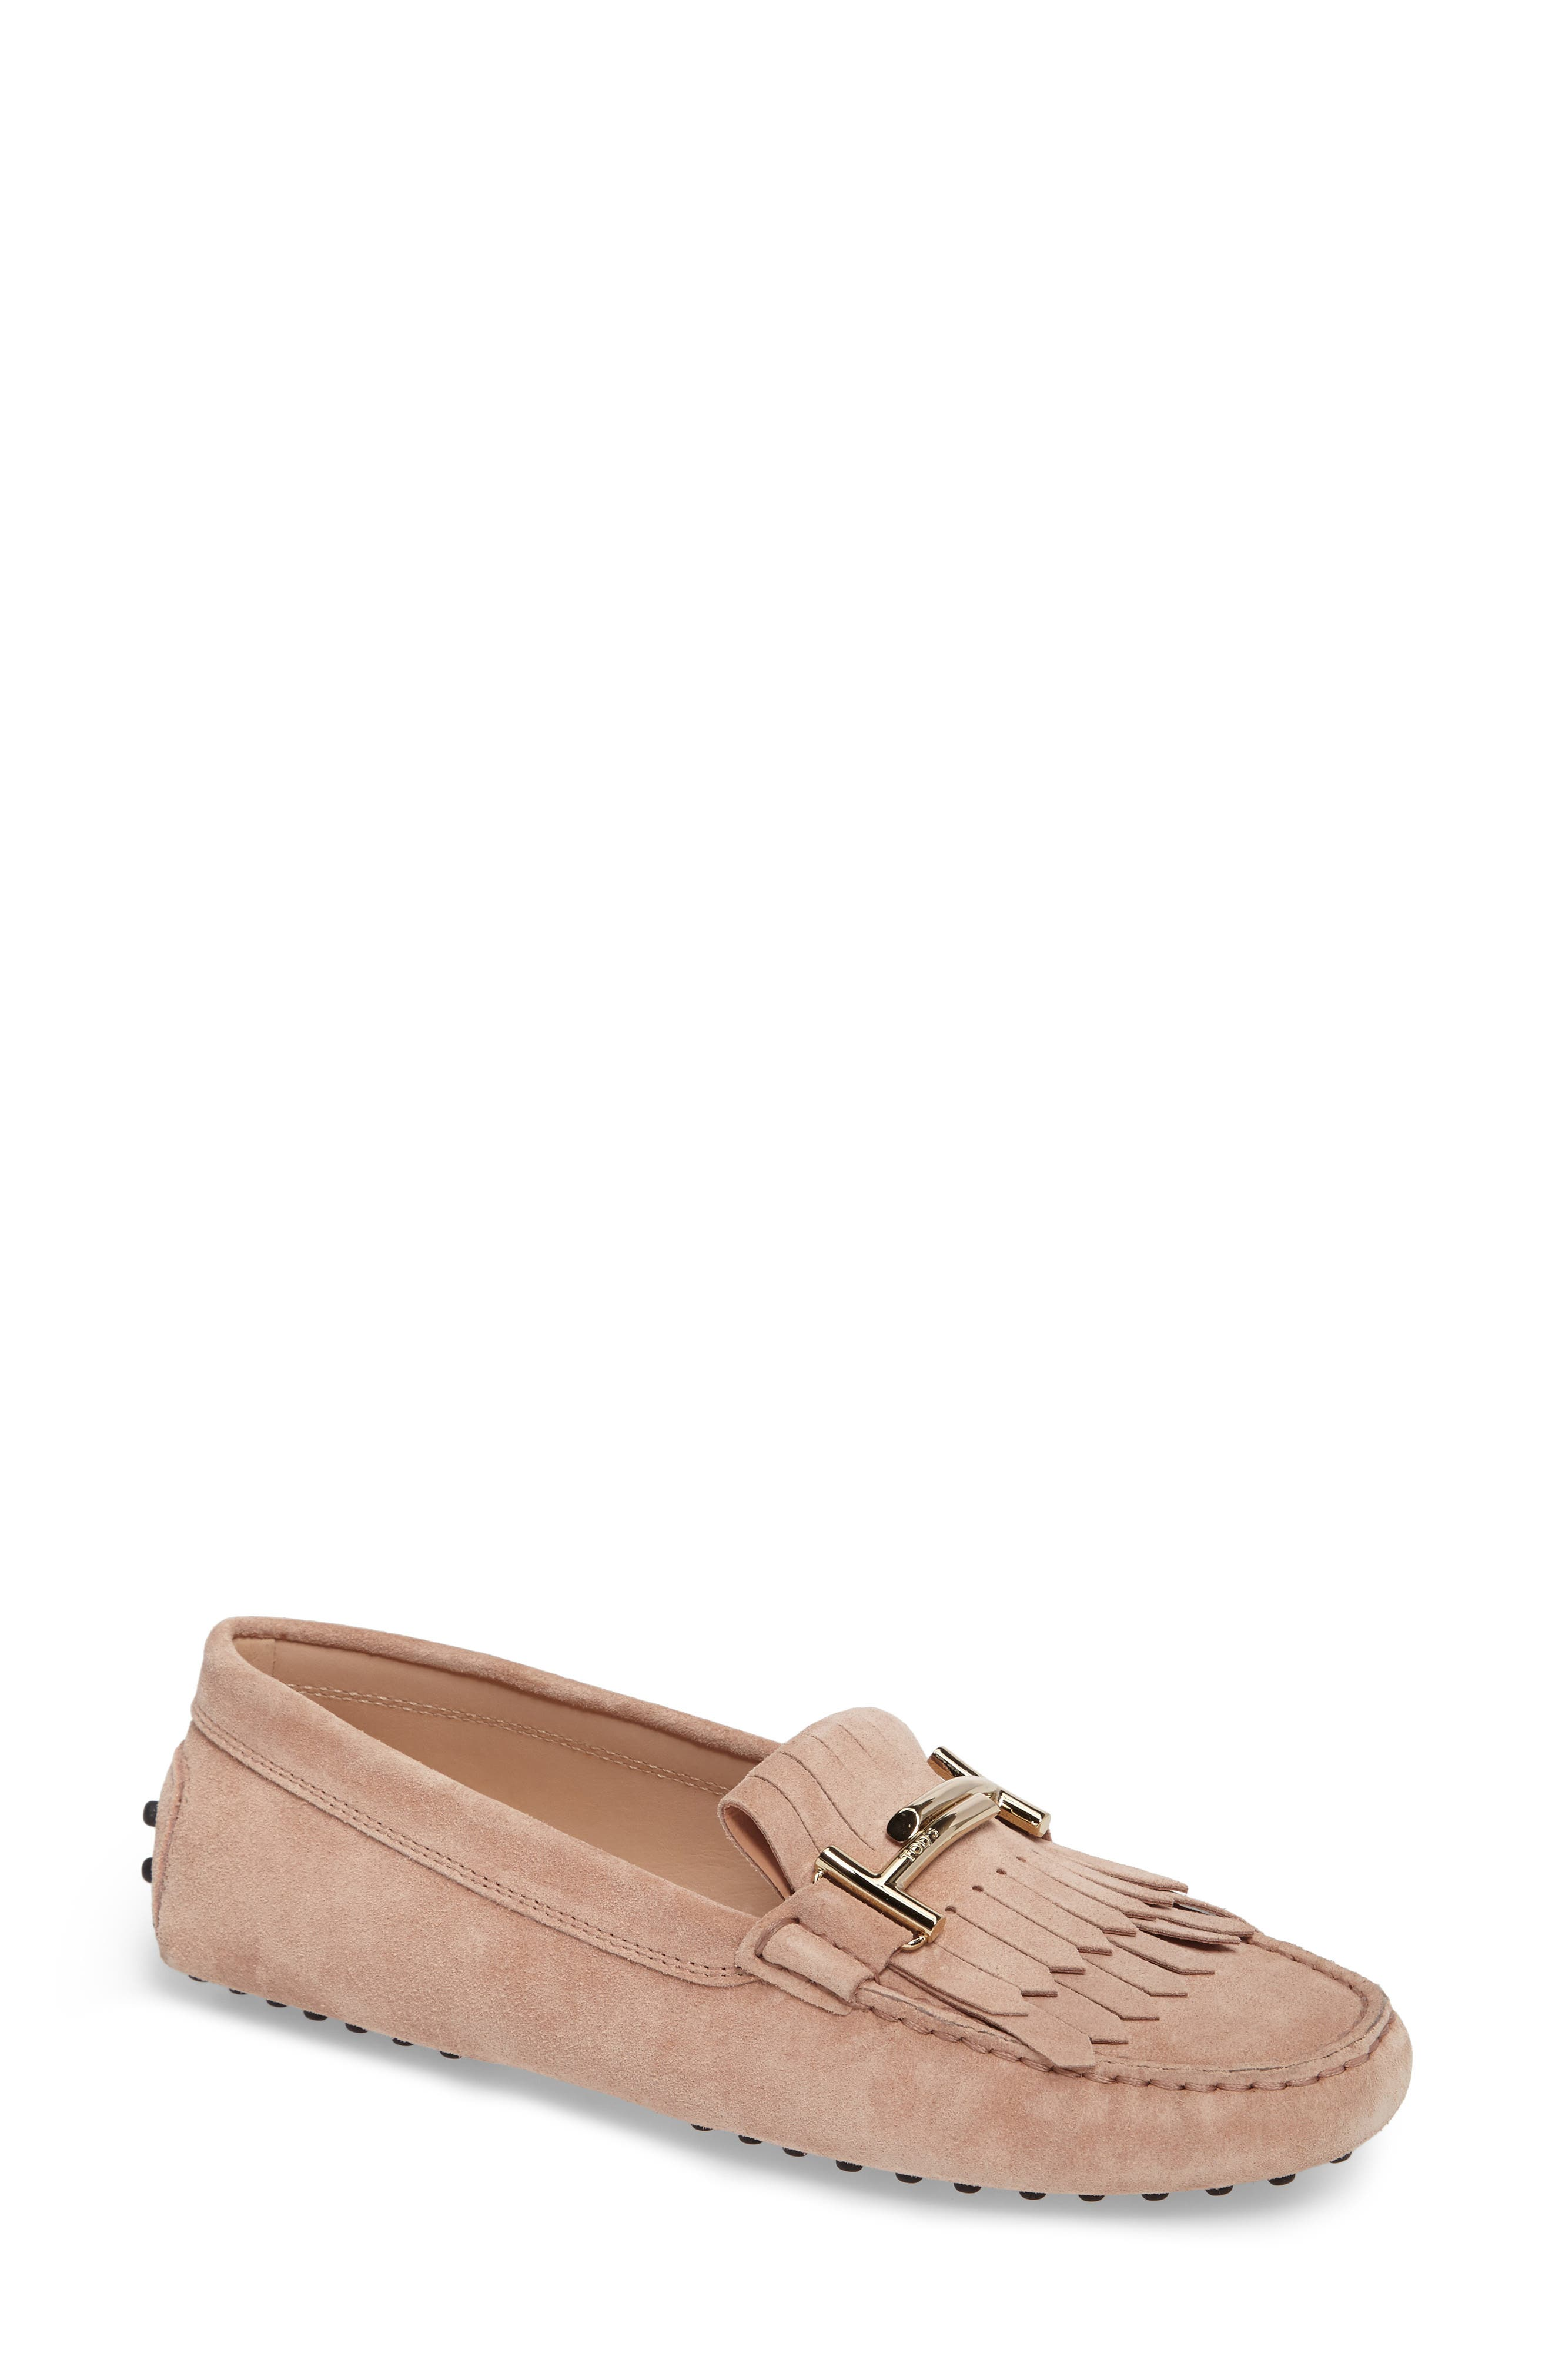 Double T Fringe Gommino Loafer,                             Main thumbnail 1, color,                             Cheek Beige